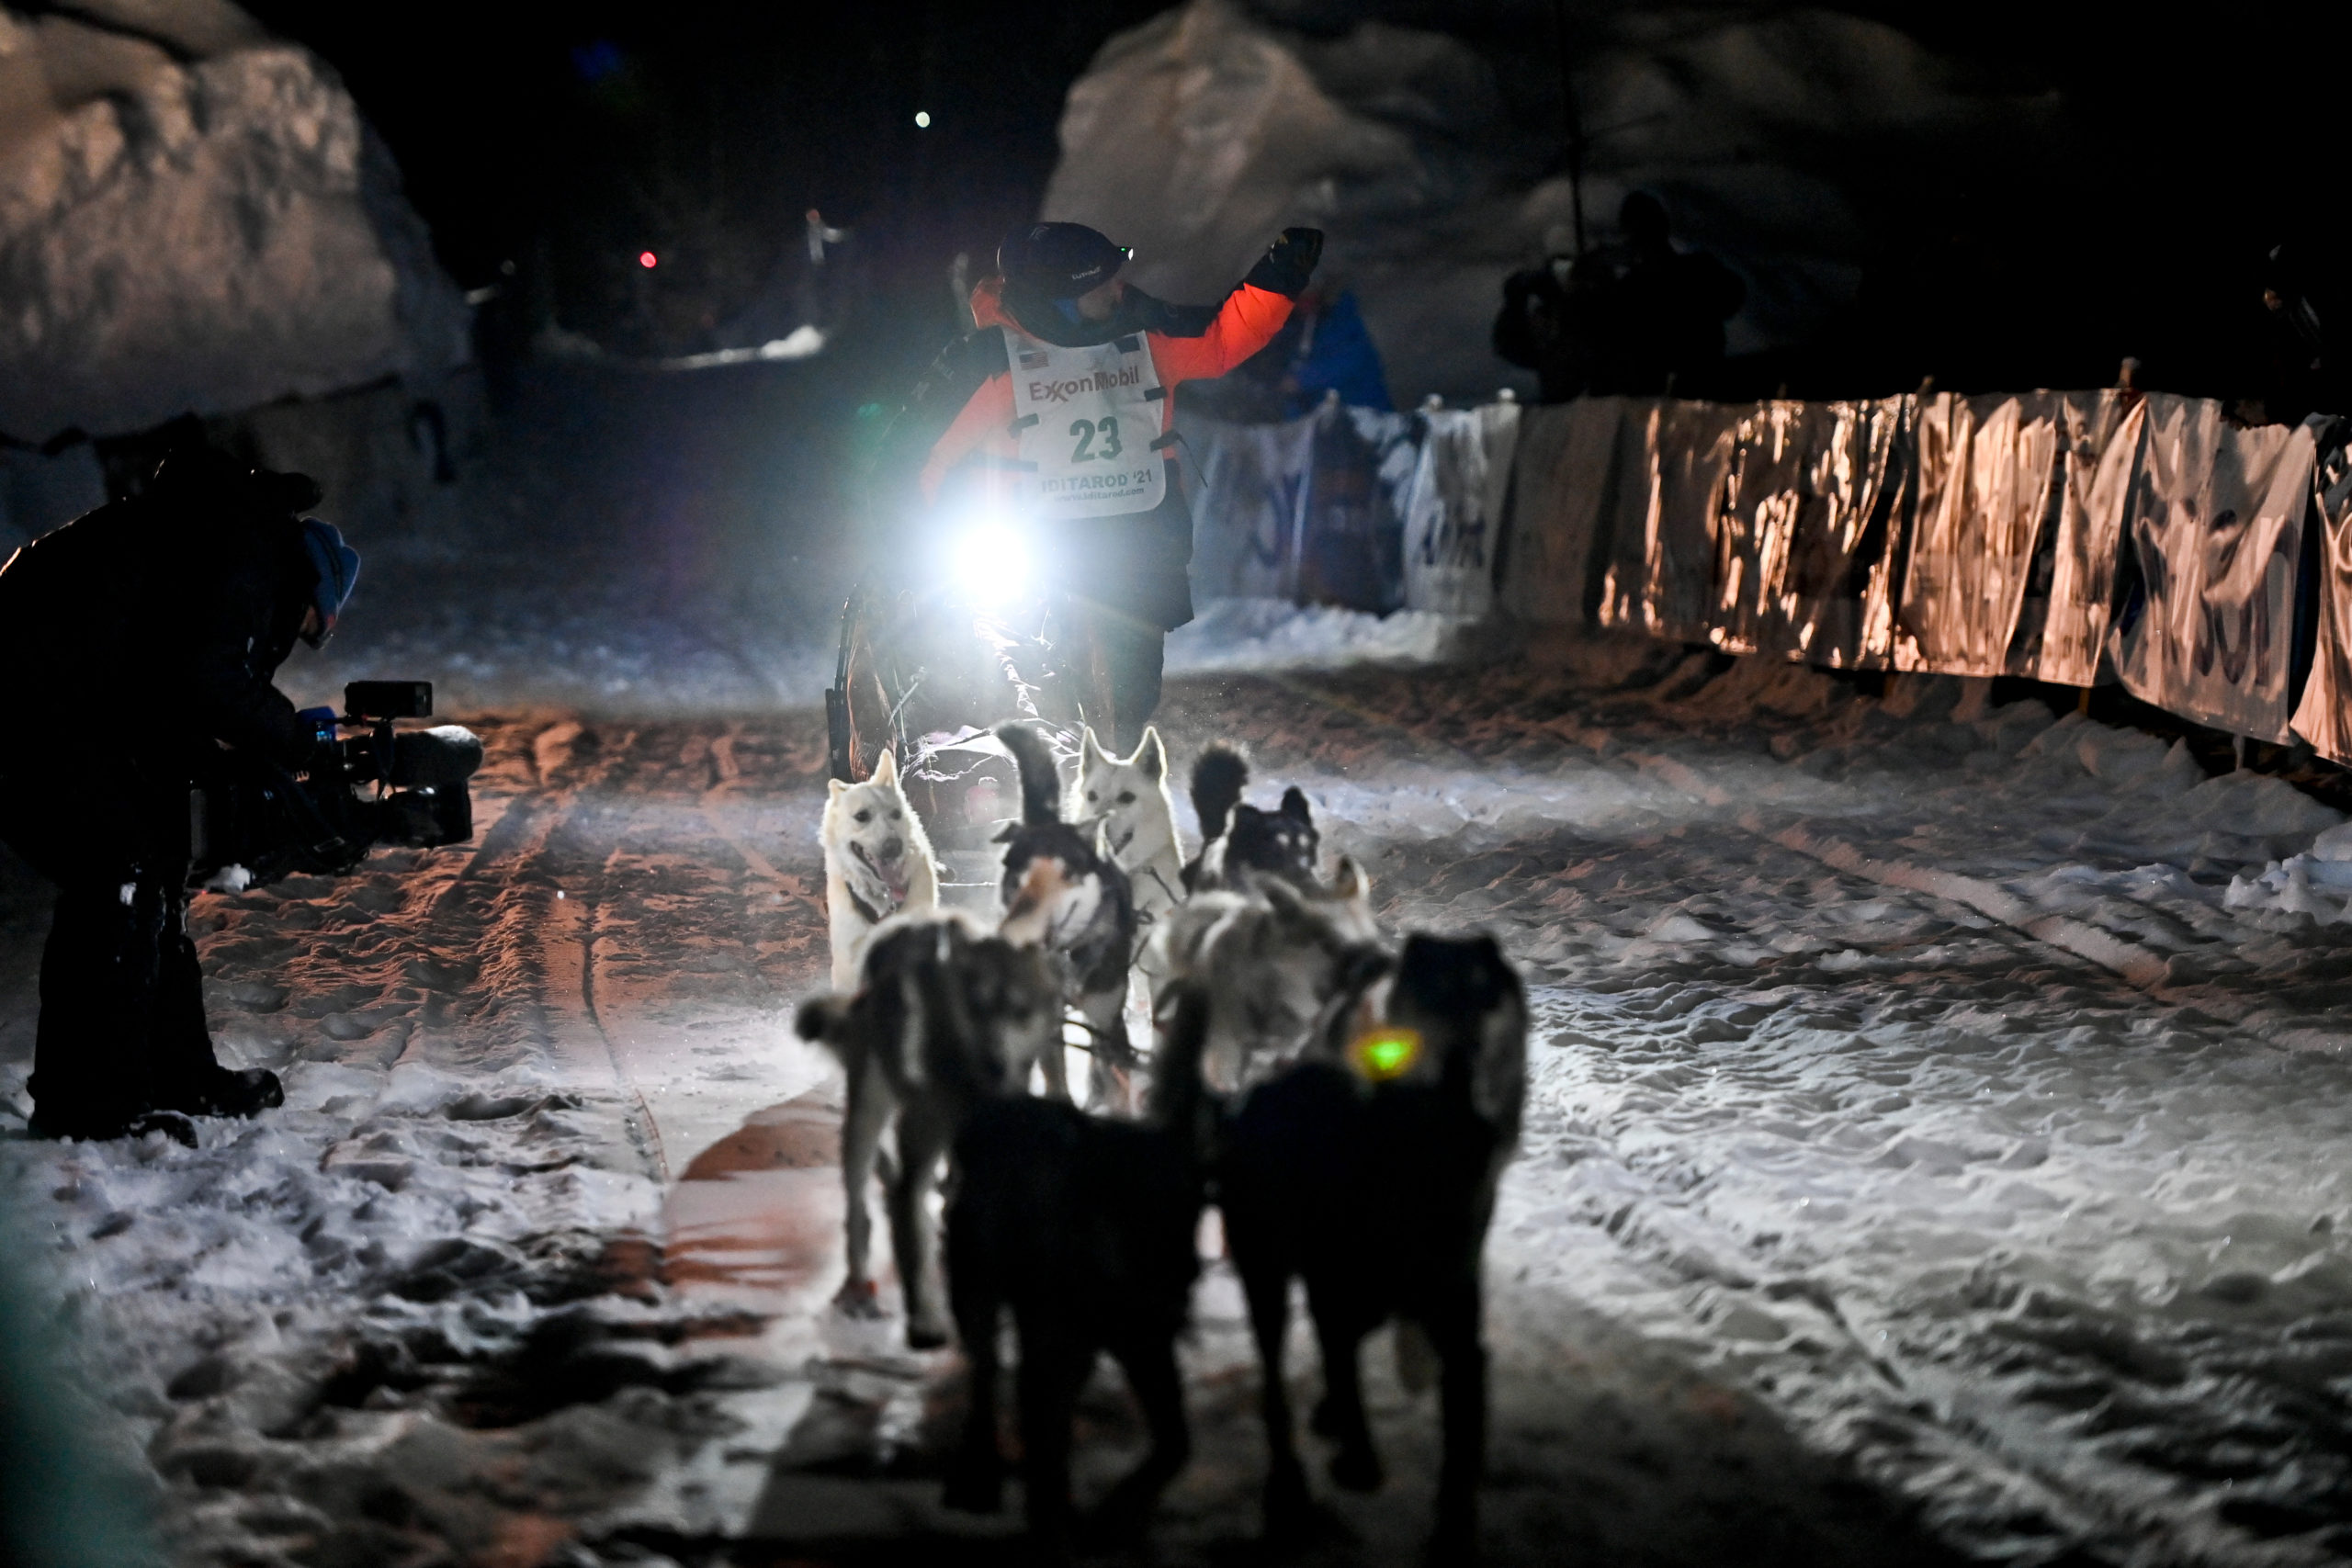 A dog musher and sled dogs race into a snowy finish line.